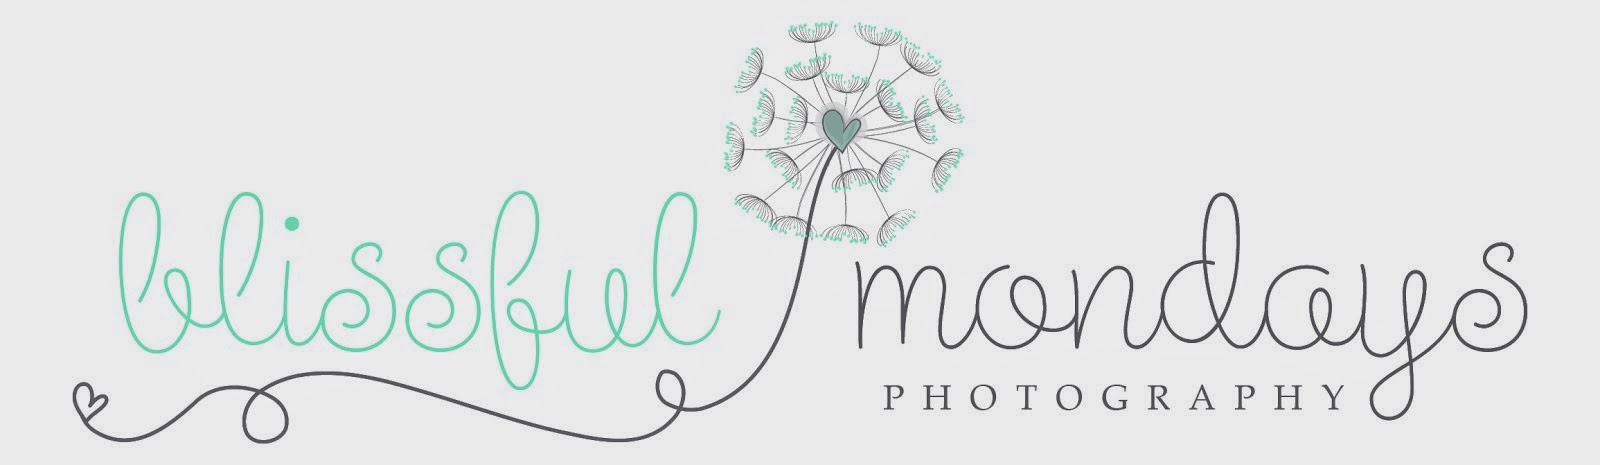 Blissful Mondays Photography